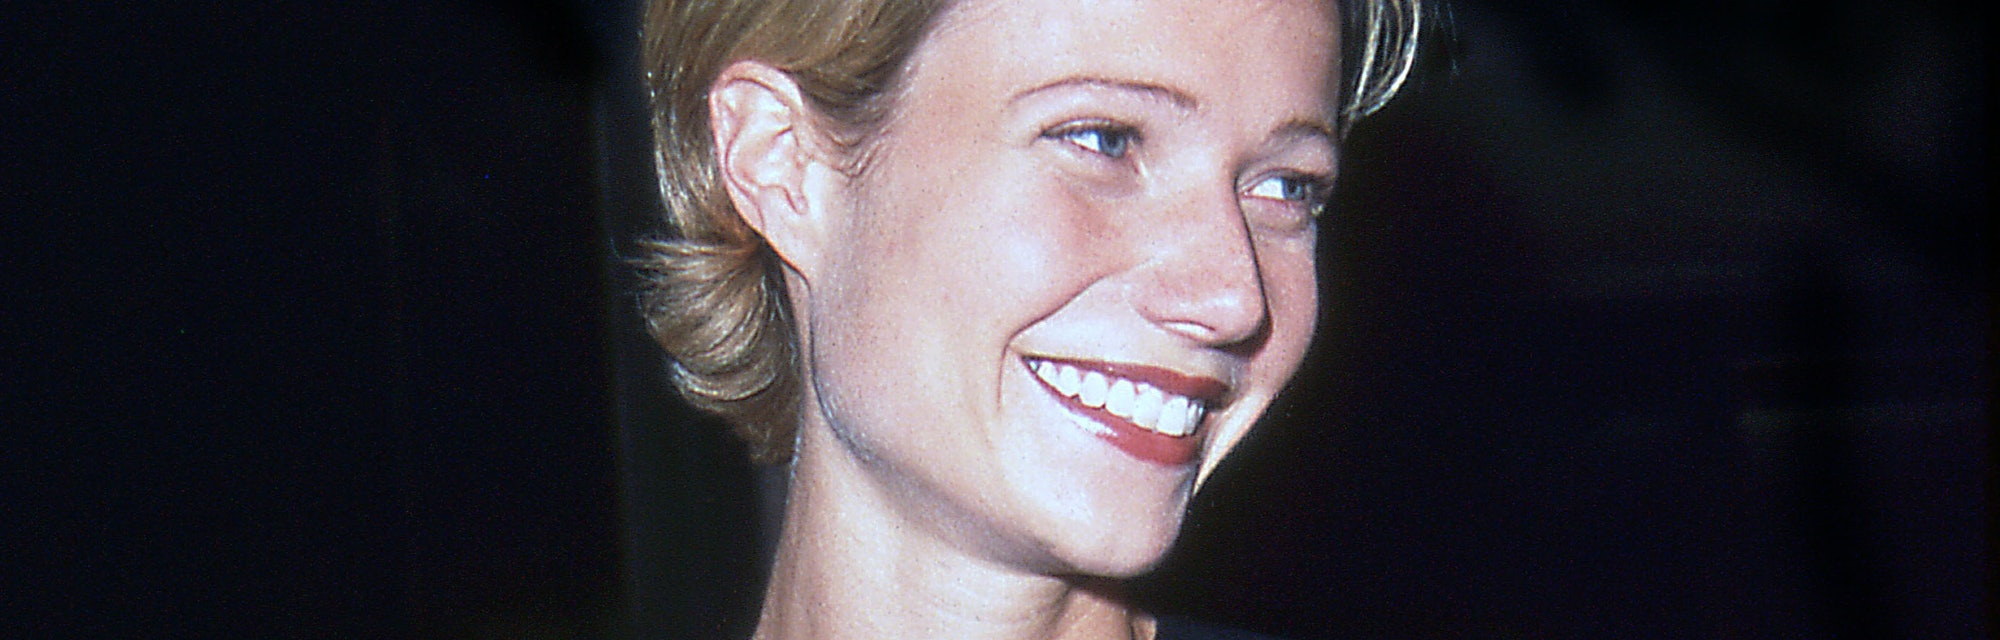 Actress Gwyneth Paltrow smiles while attending a dinner at the Four Seasons Restaurant, New York, Ne...